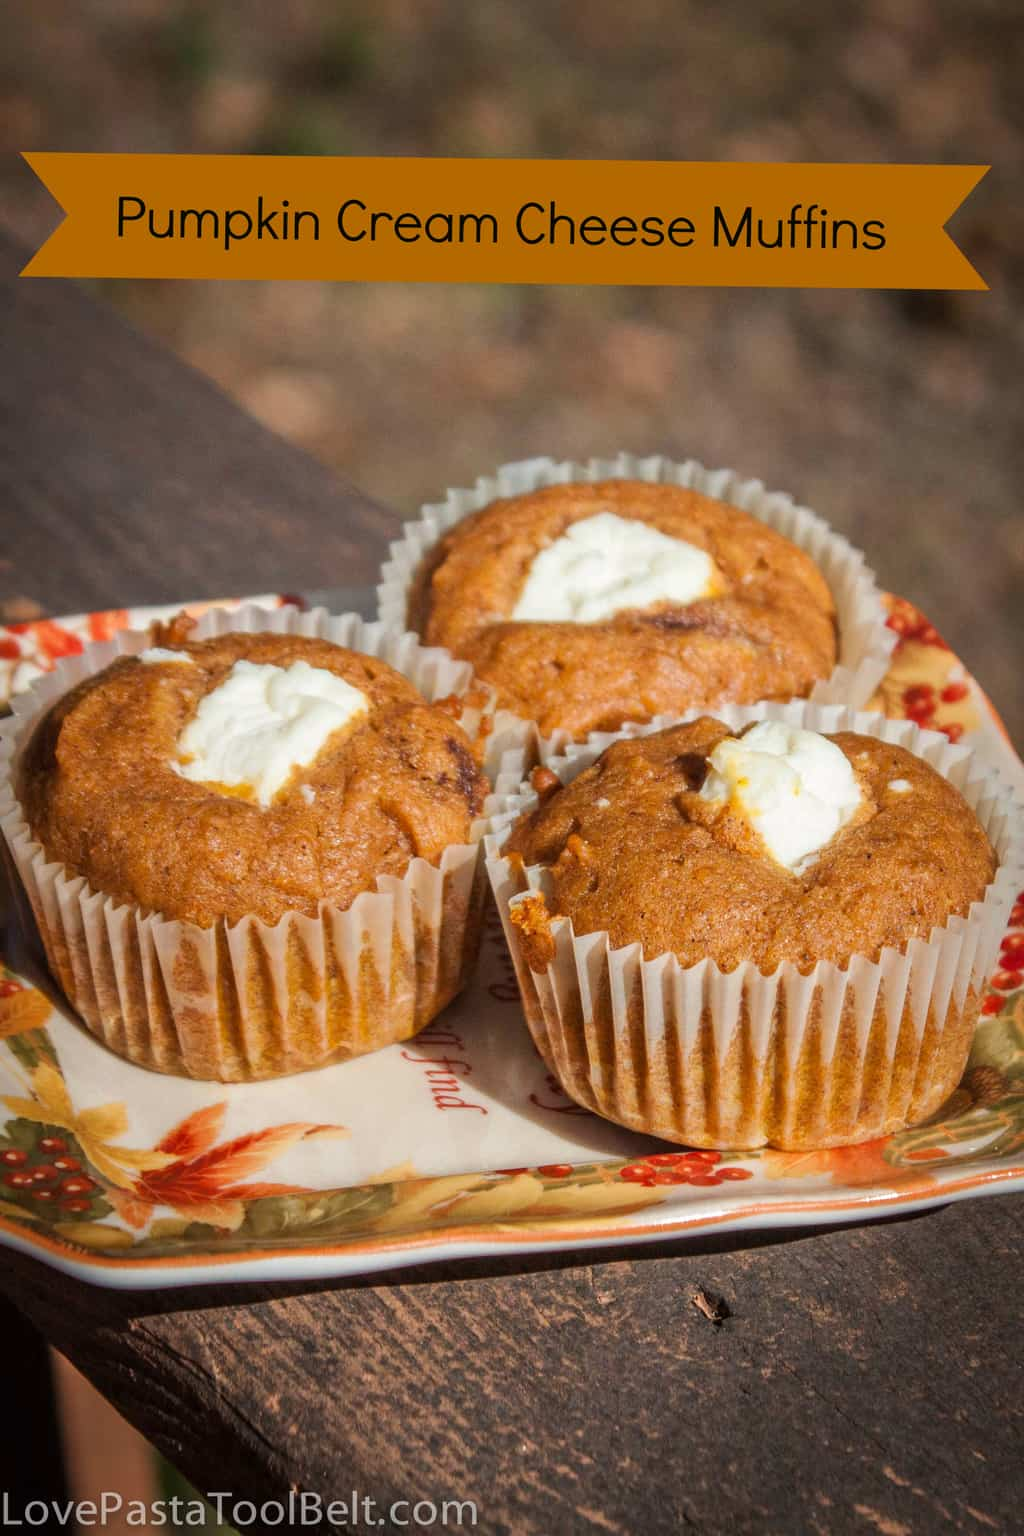 Pumpkin Cream Cheese Muffins - Love, Pasta, and a Tool Belt